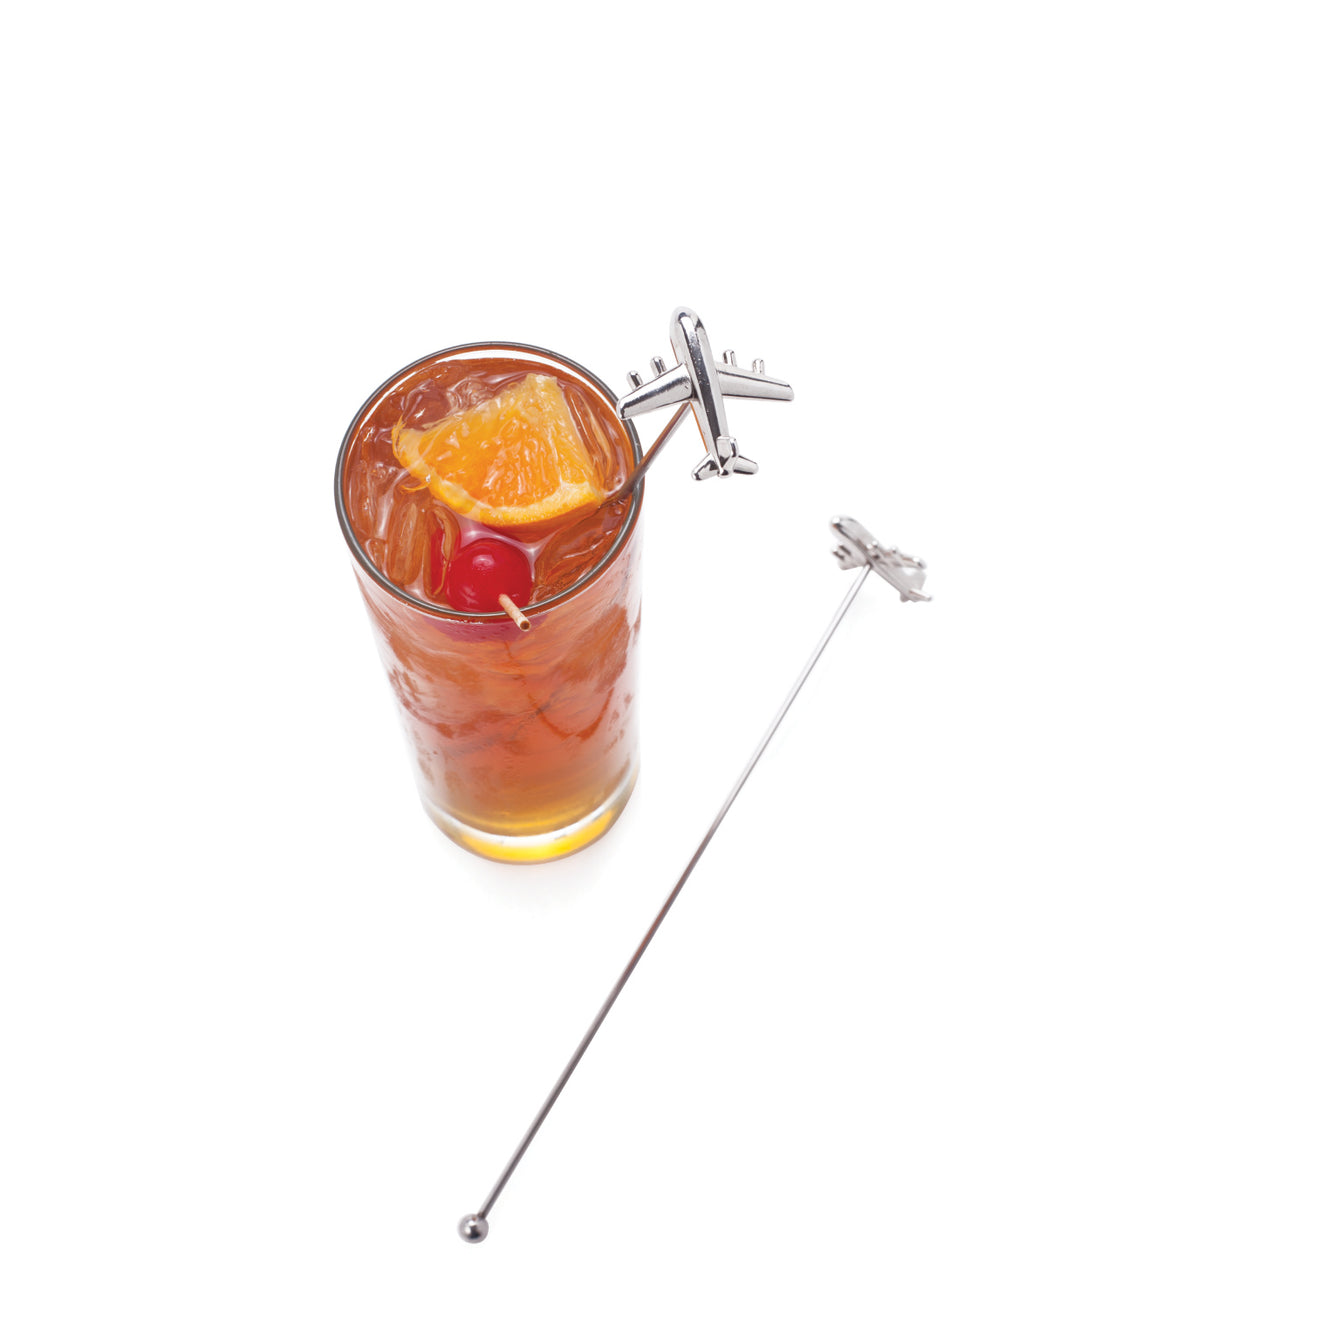 Irving Stainless Steel Airplane Stir Sticks-Home - Entertaining - Stir Sticks-VISKI-Peccadilly